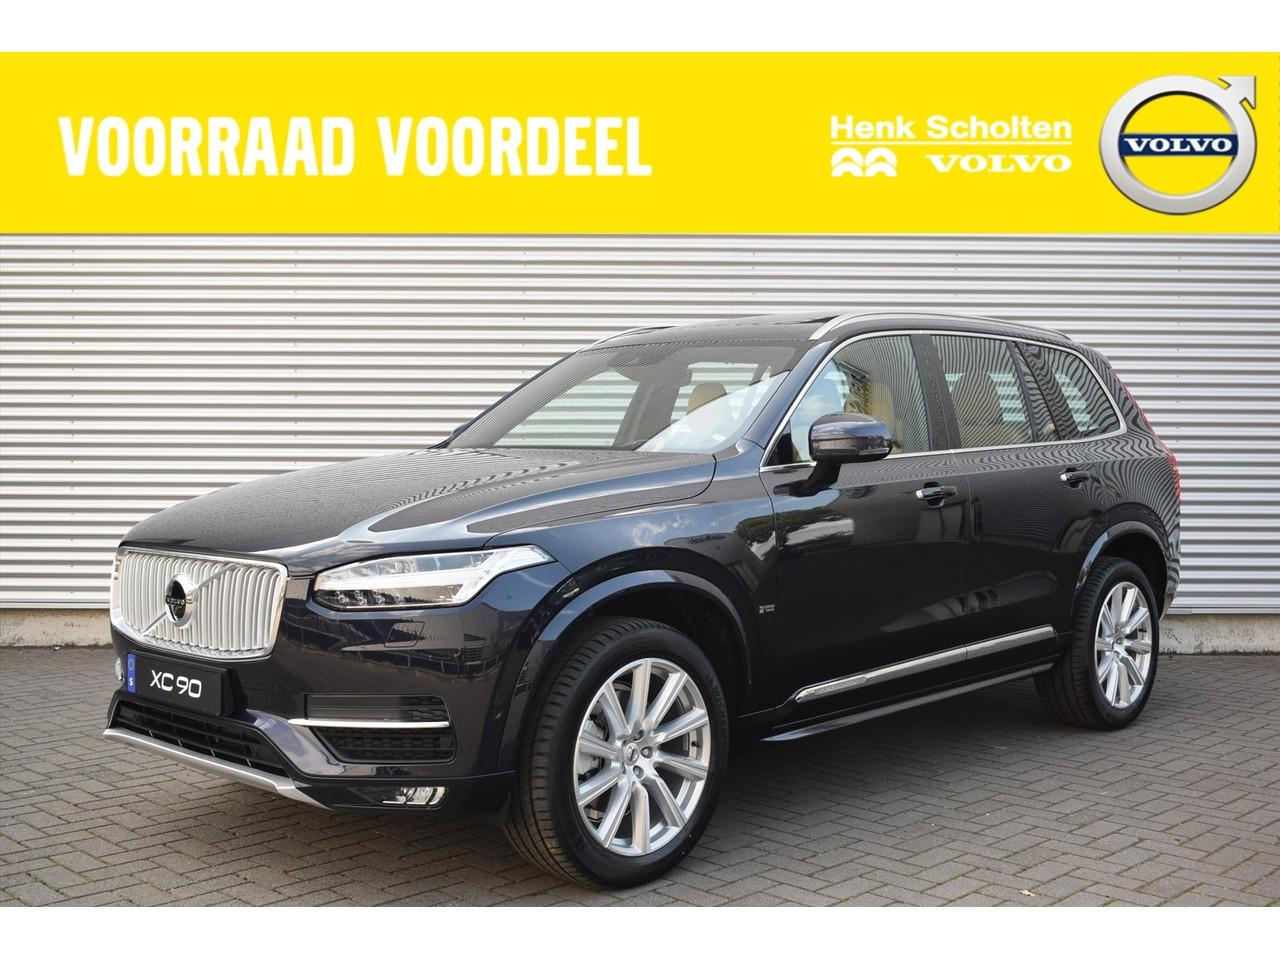 Volvo Xc90 T5 aut(8) awd inscription luchtvering panoramadak